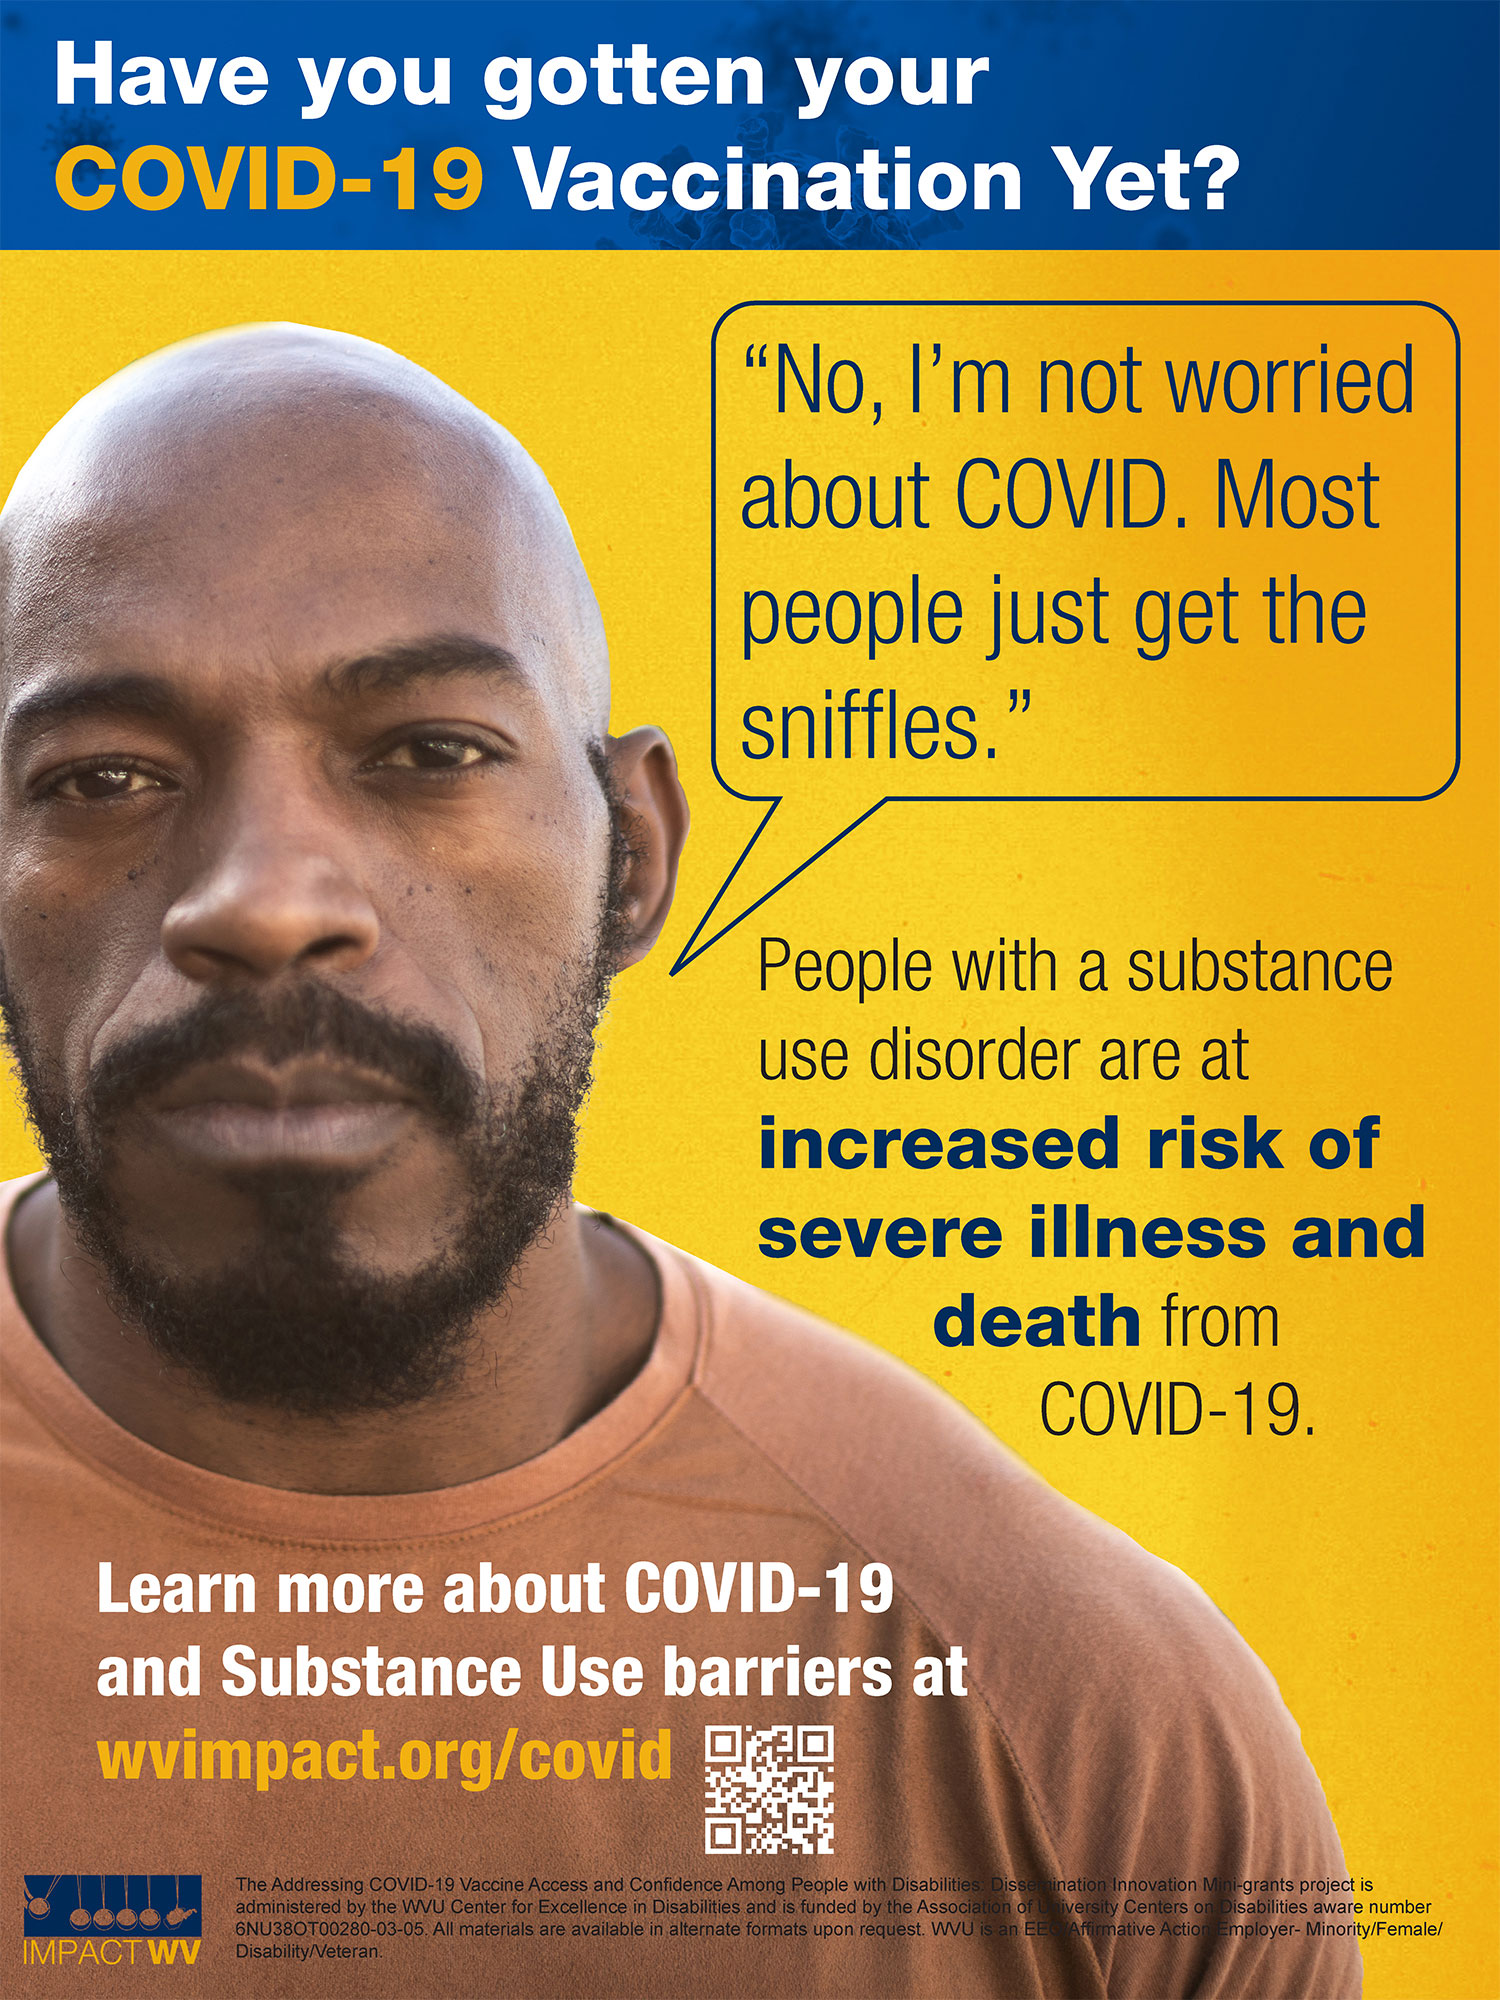 an image with the People with Substance Use Disorder are at Increased risk text featuring an African American Man